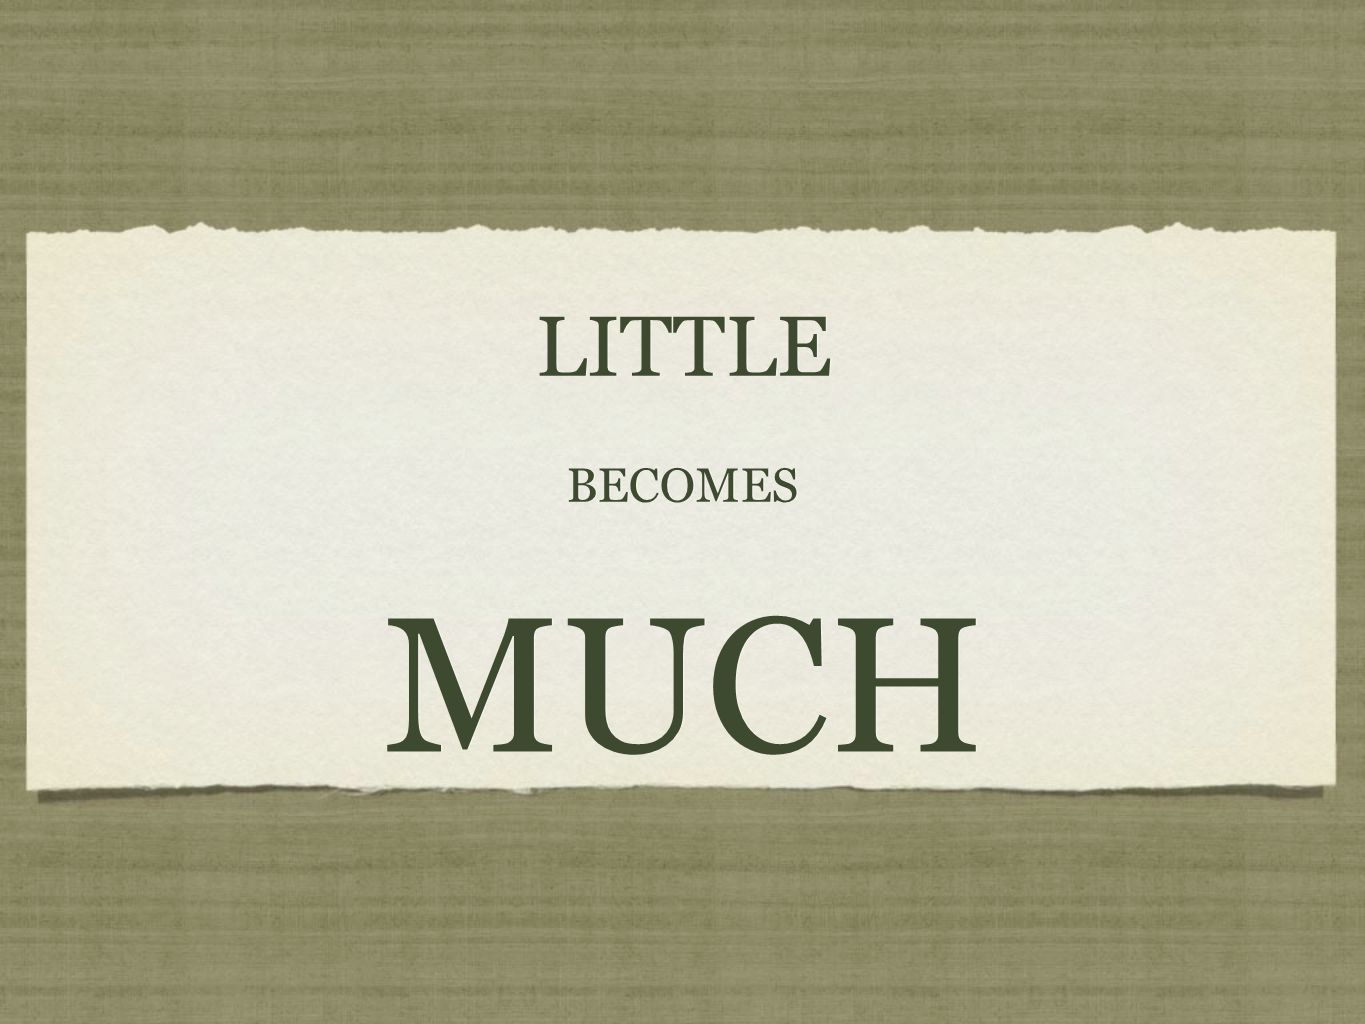 LITTLE BECOMES MUCH